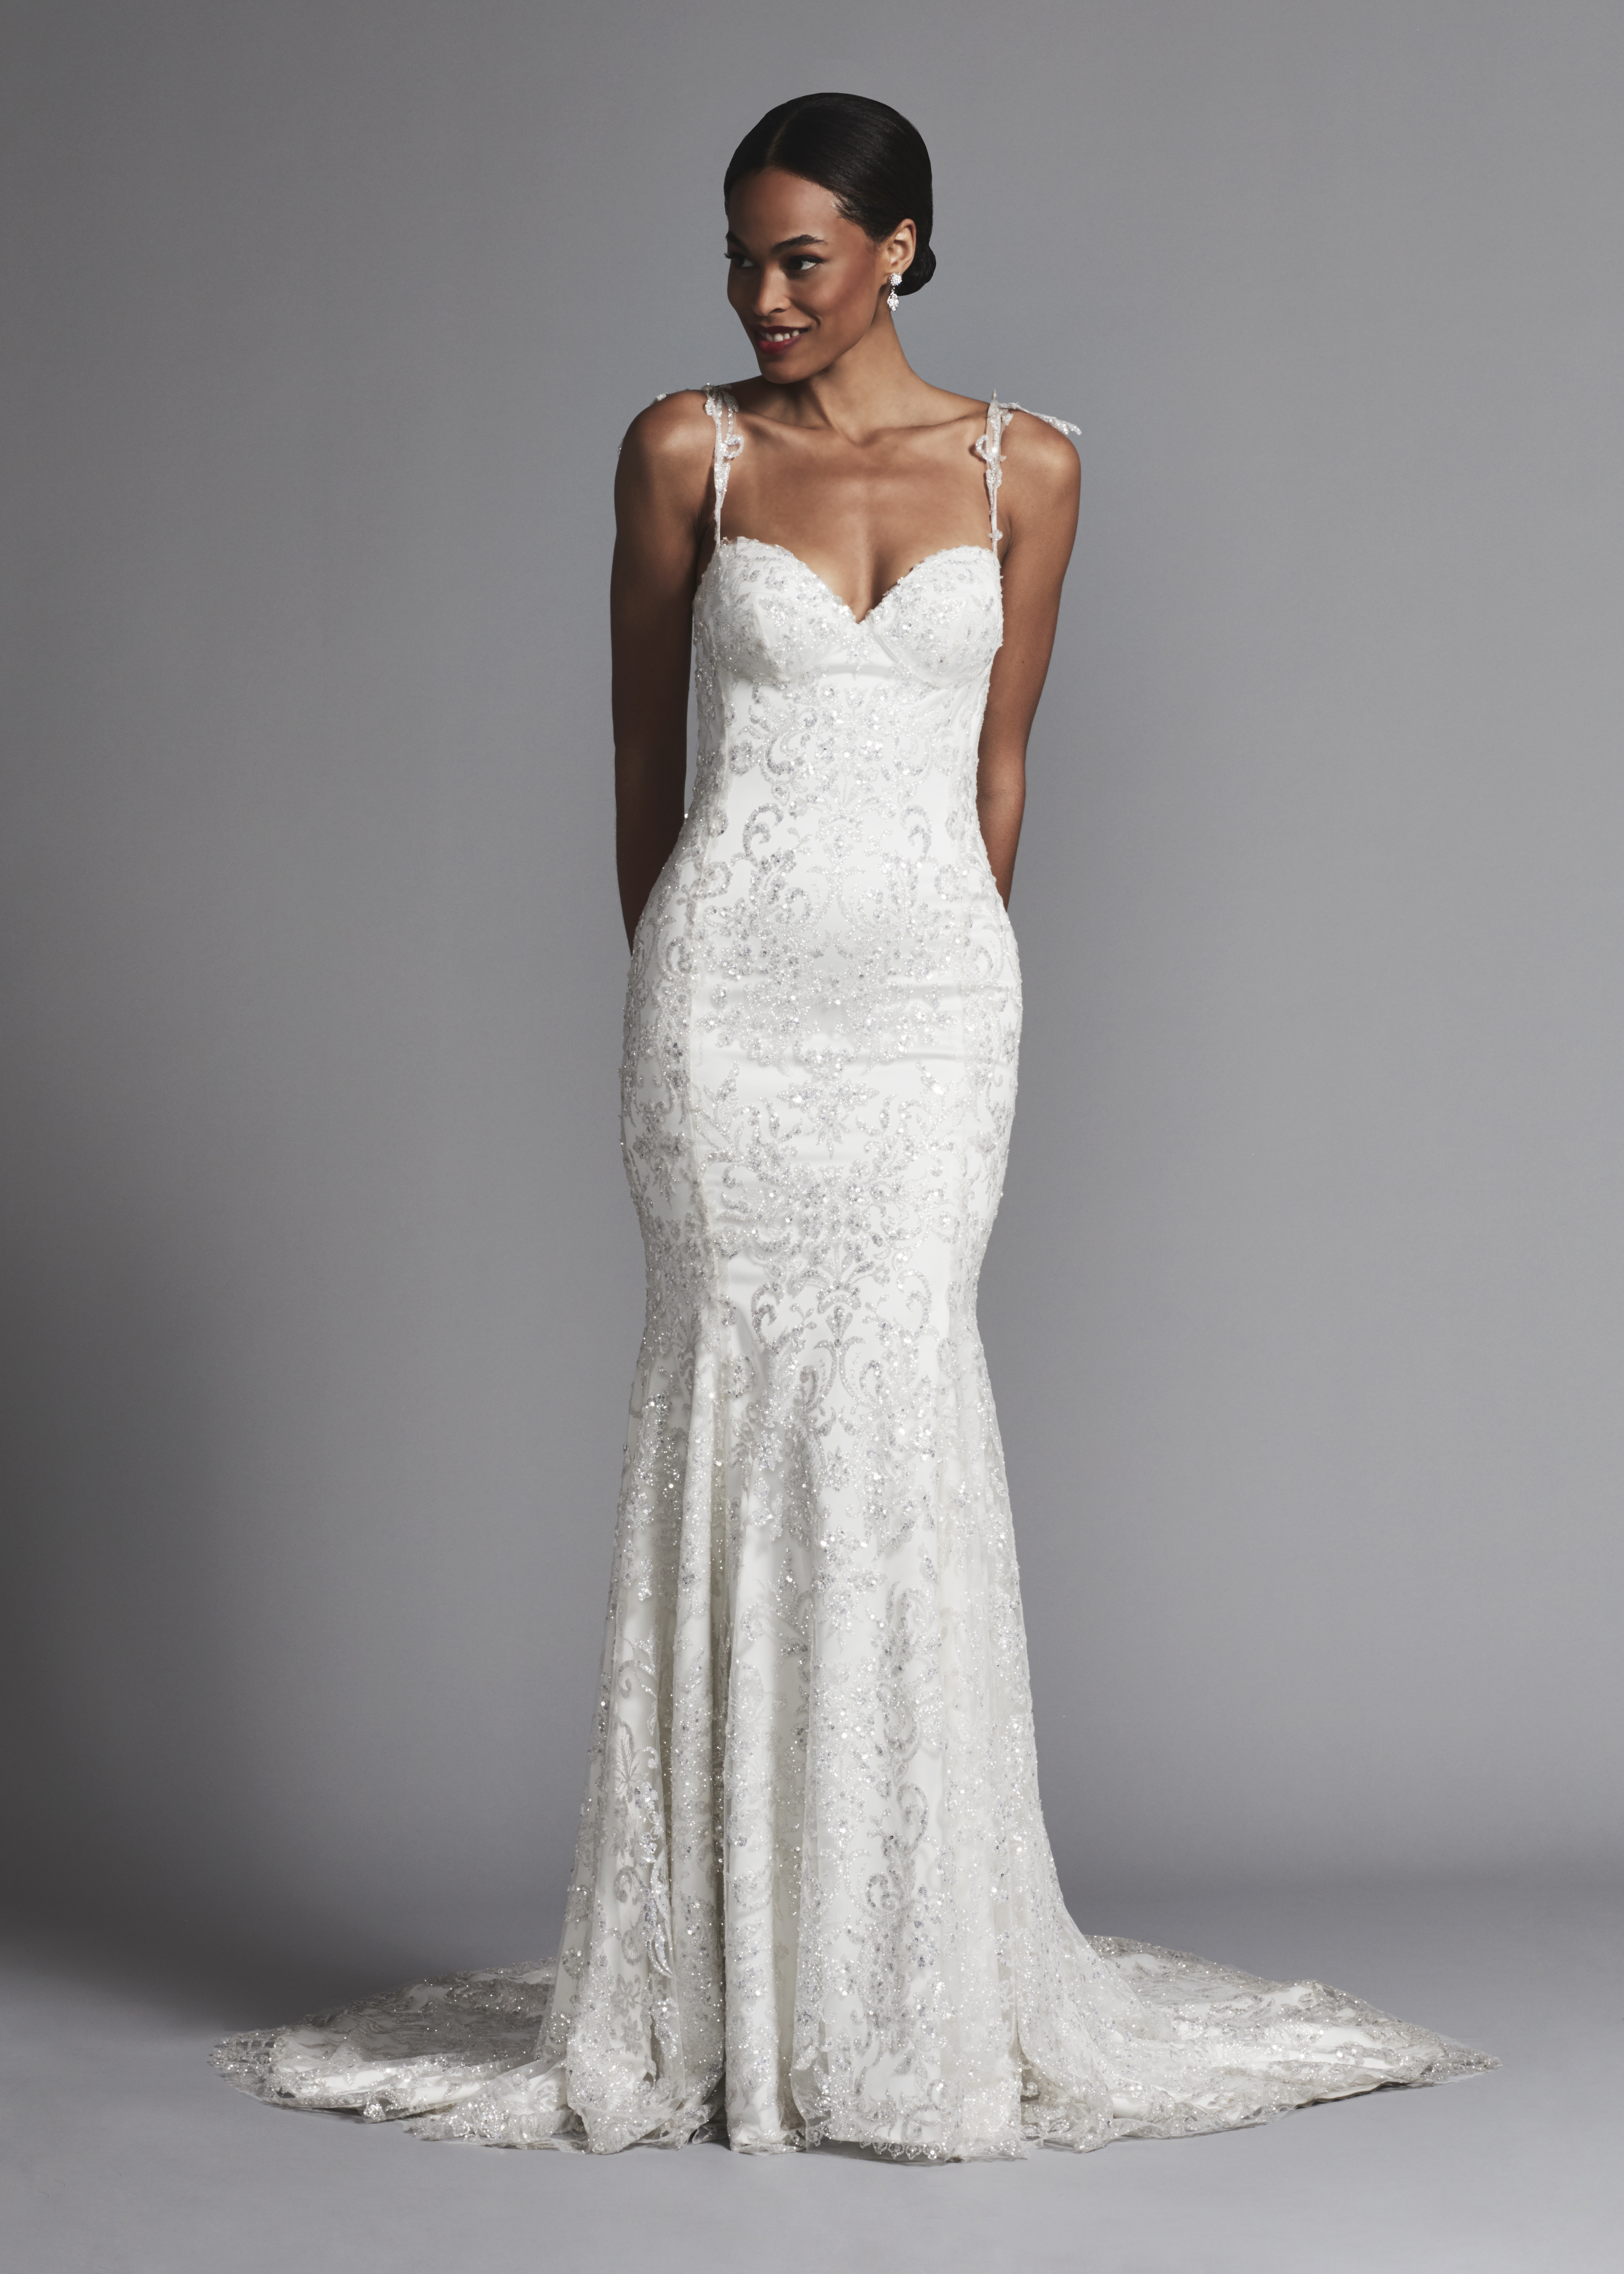 Sexy Spaghetti Strap Glitter Fit And Flare Wedding Dress Kleinfeld